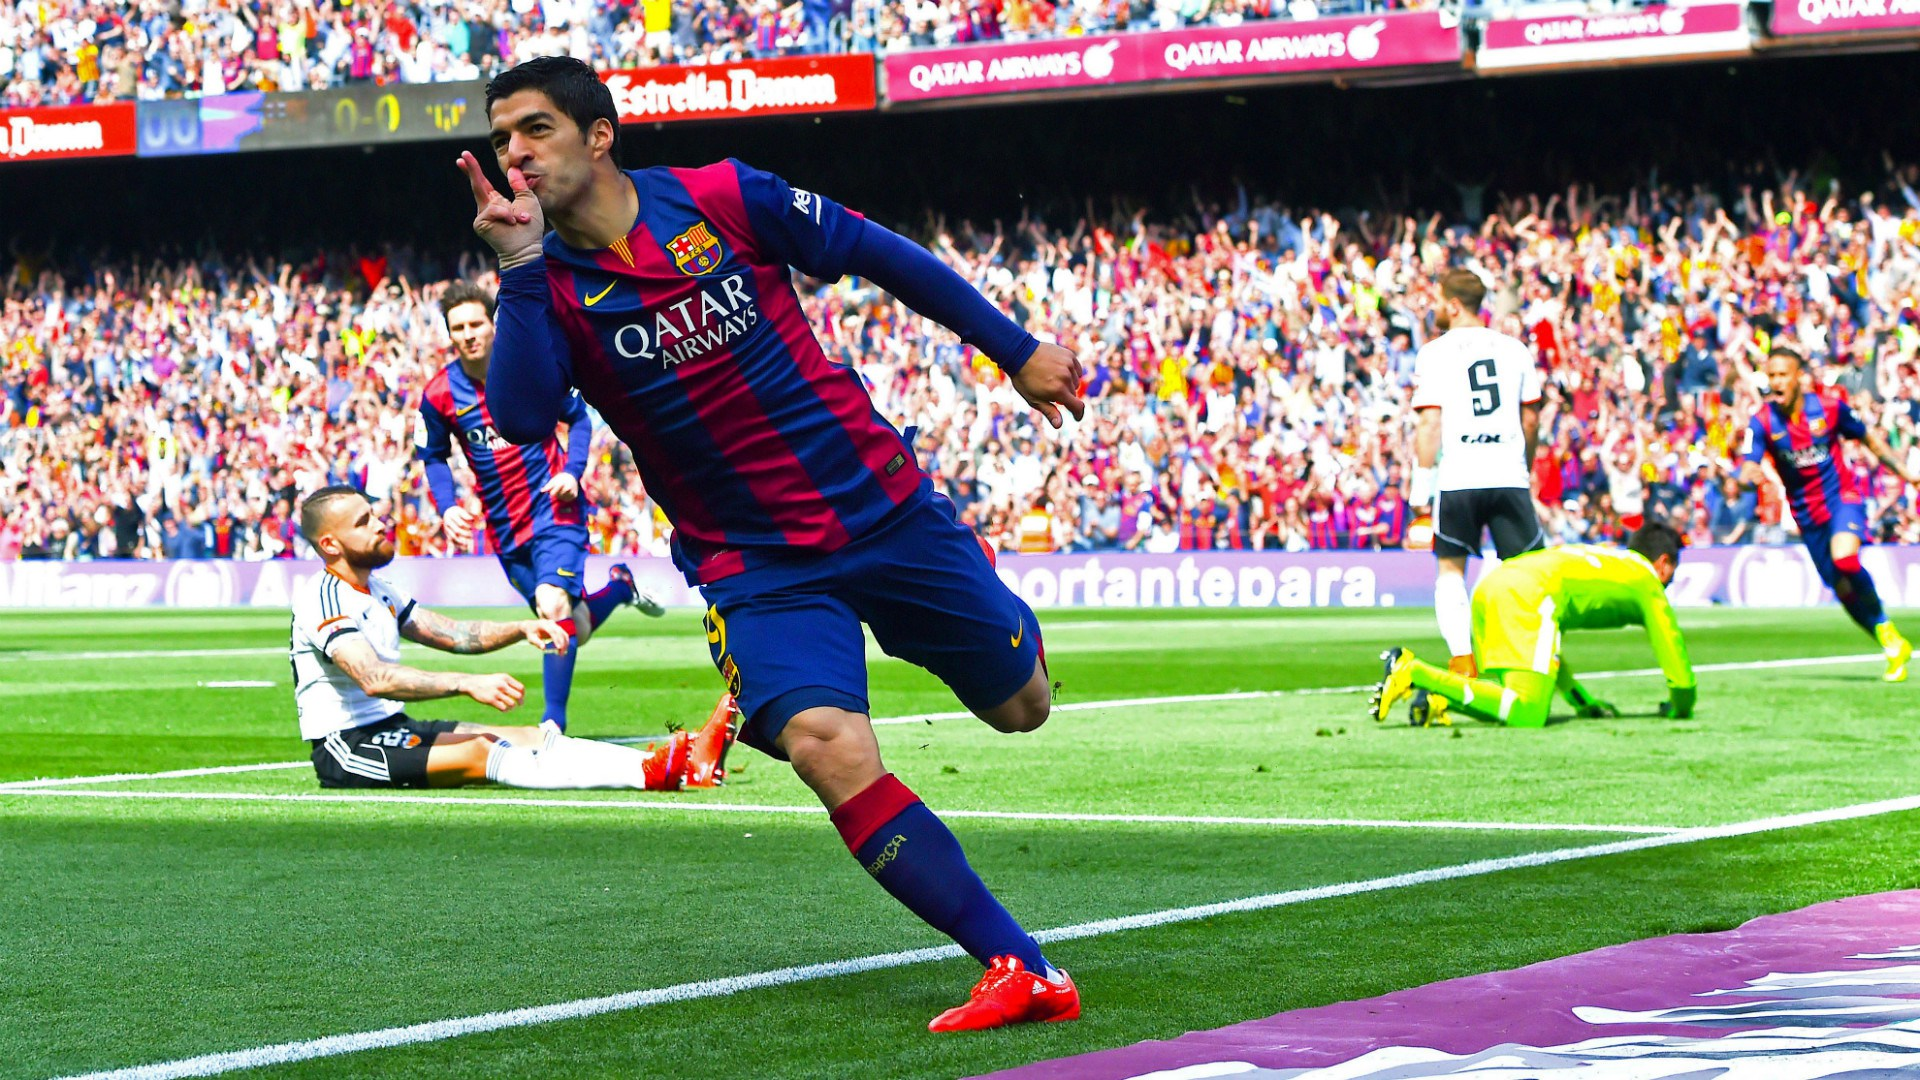 Luis Suarez Wallpapers, Pictures, Images